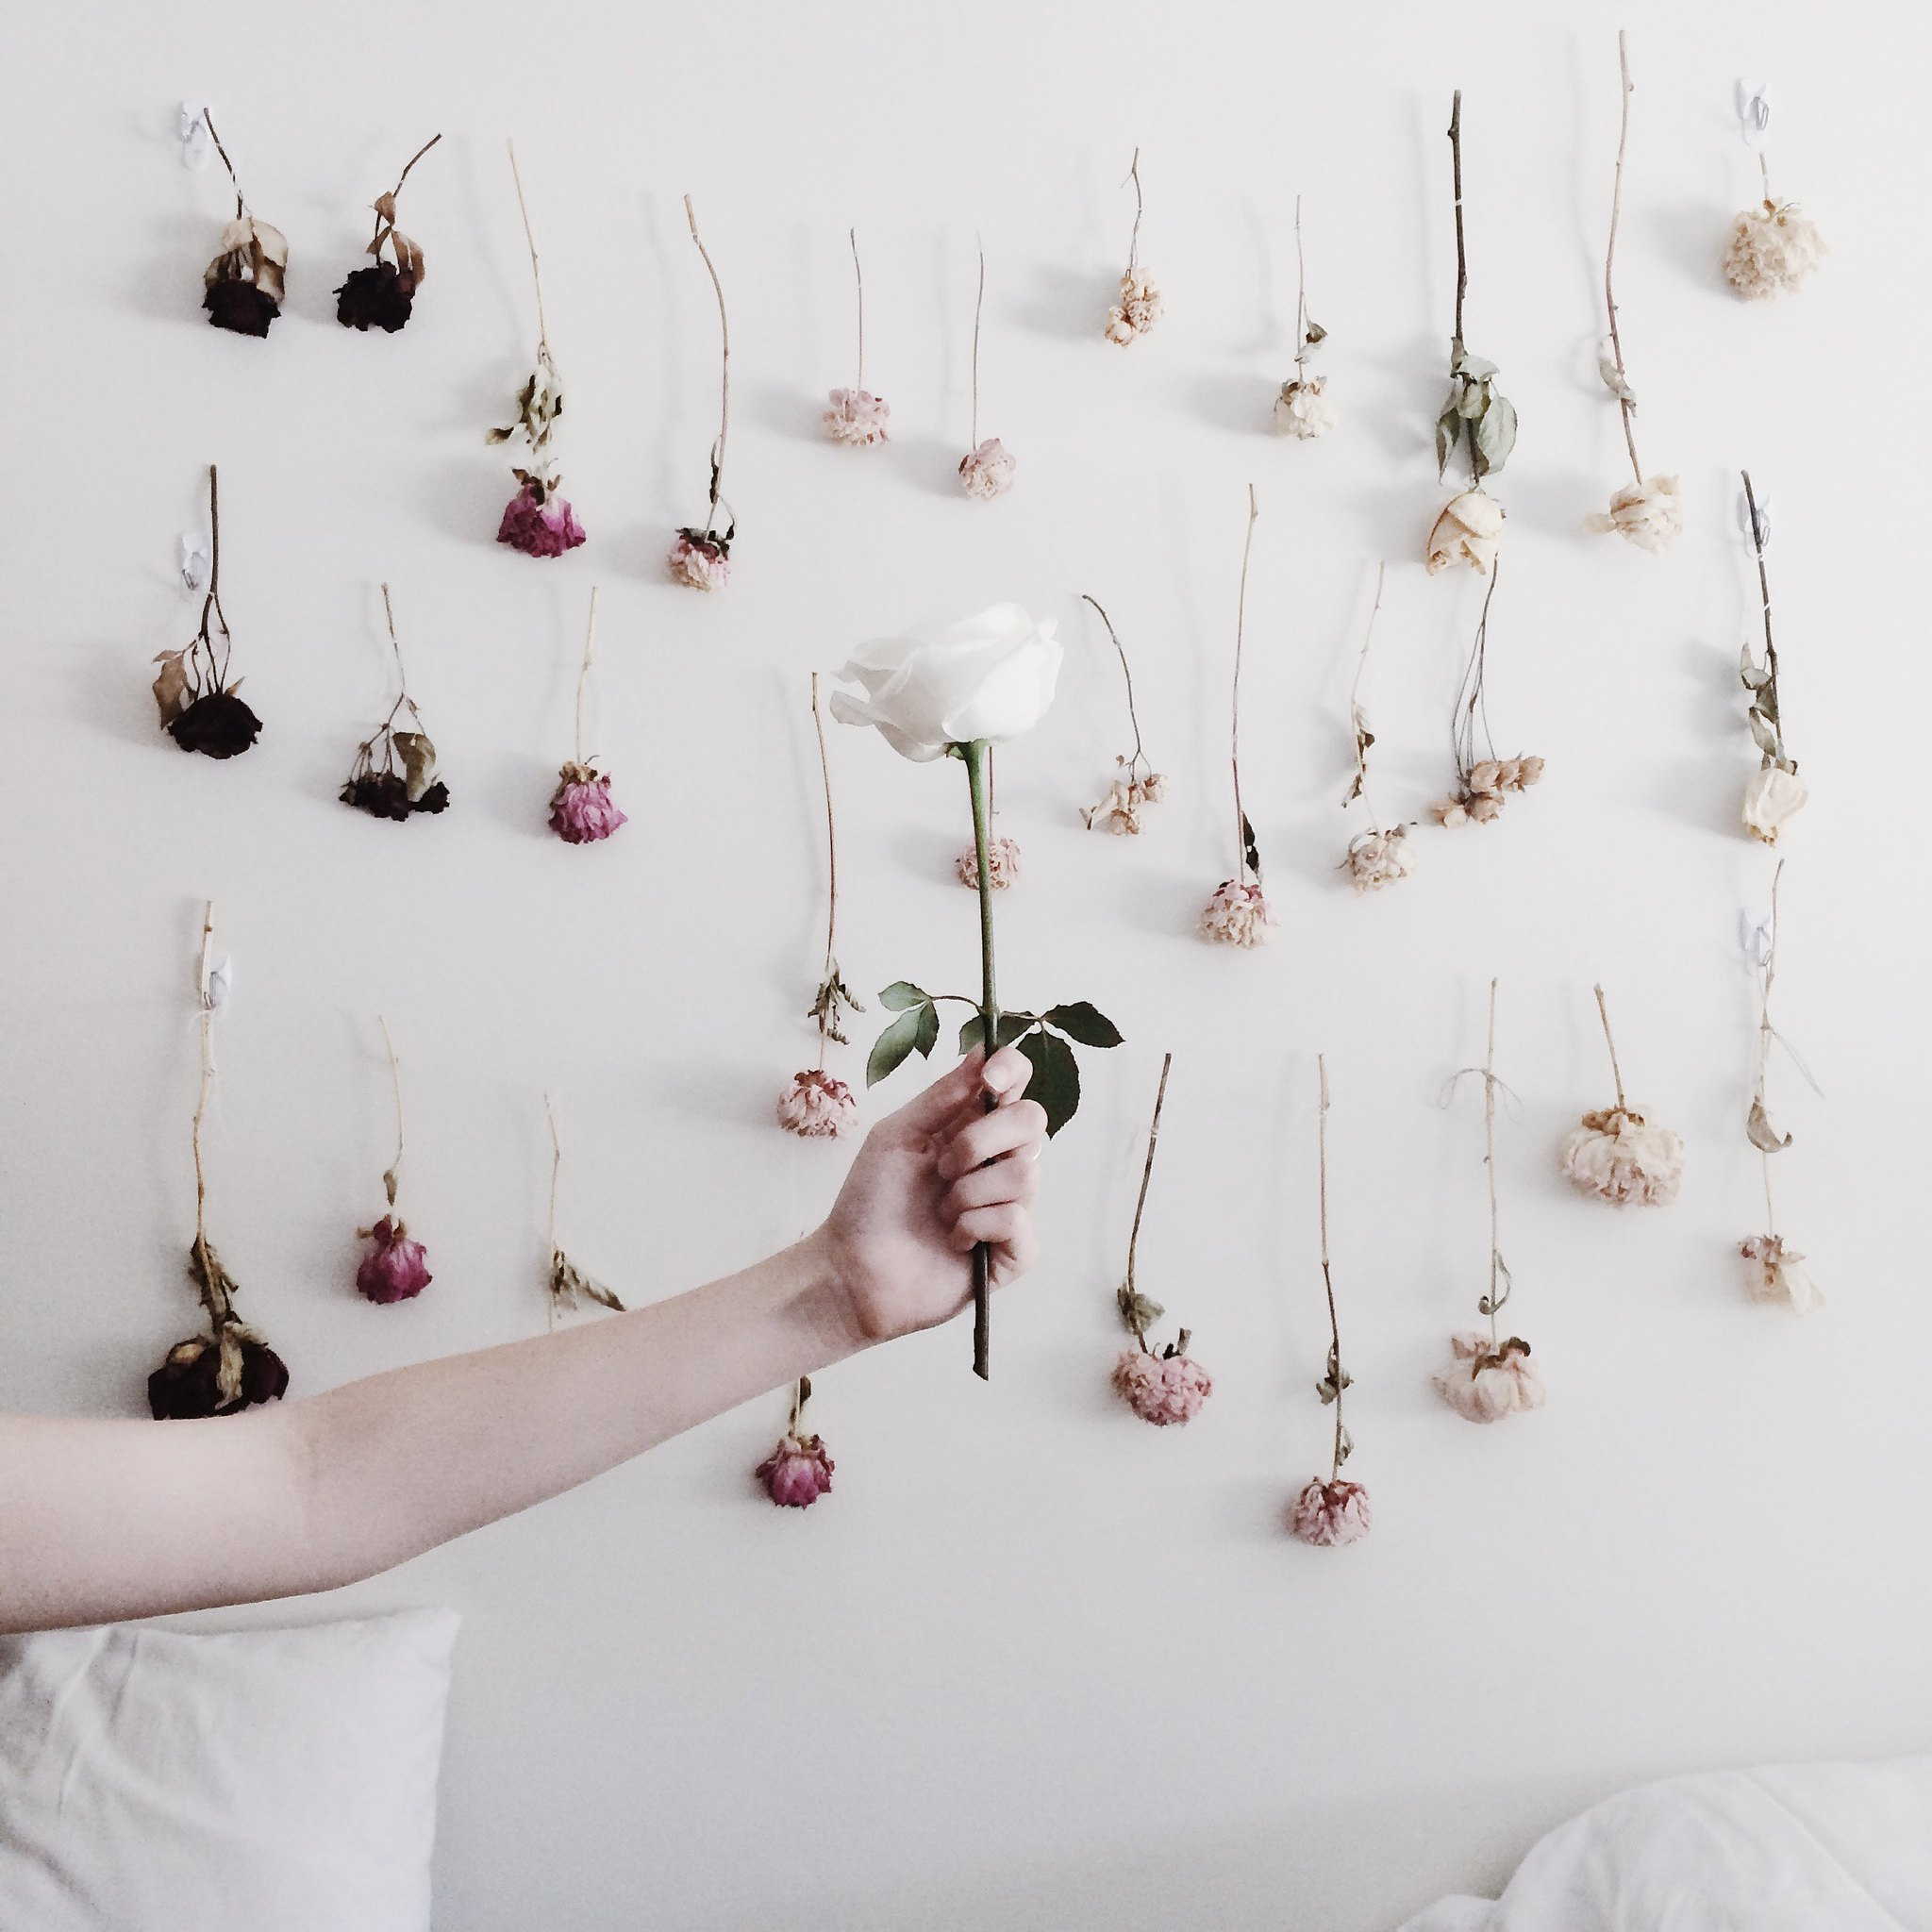 How To Preserve Flowers and Make a Dried Flower Wall on  juliettelaura.blogspot.com